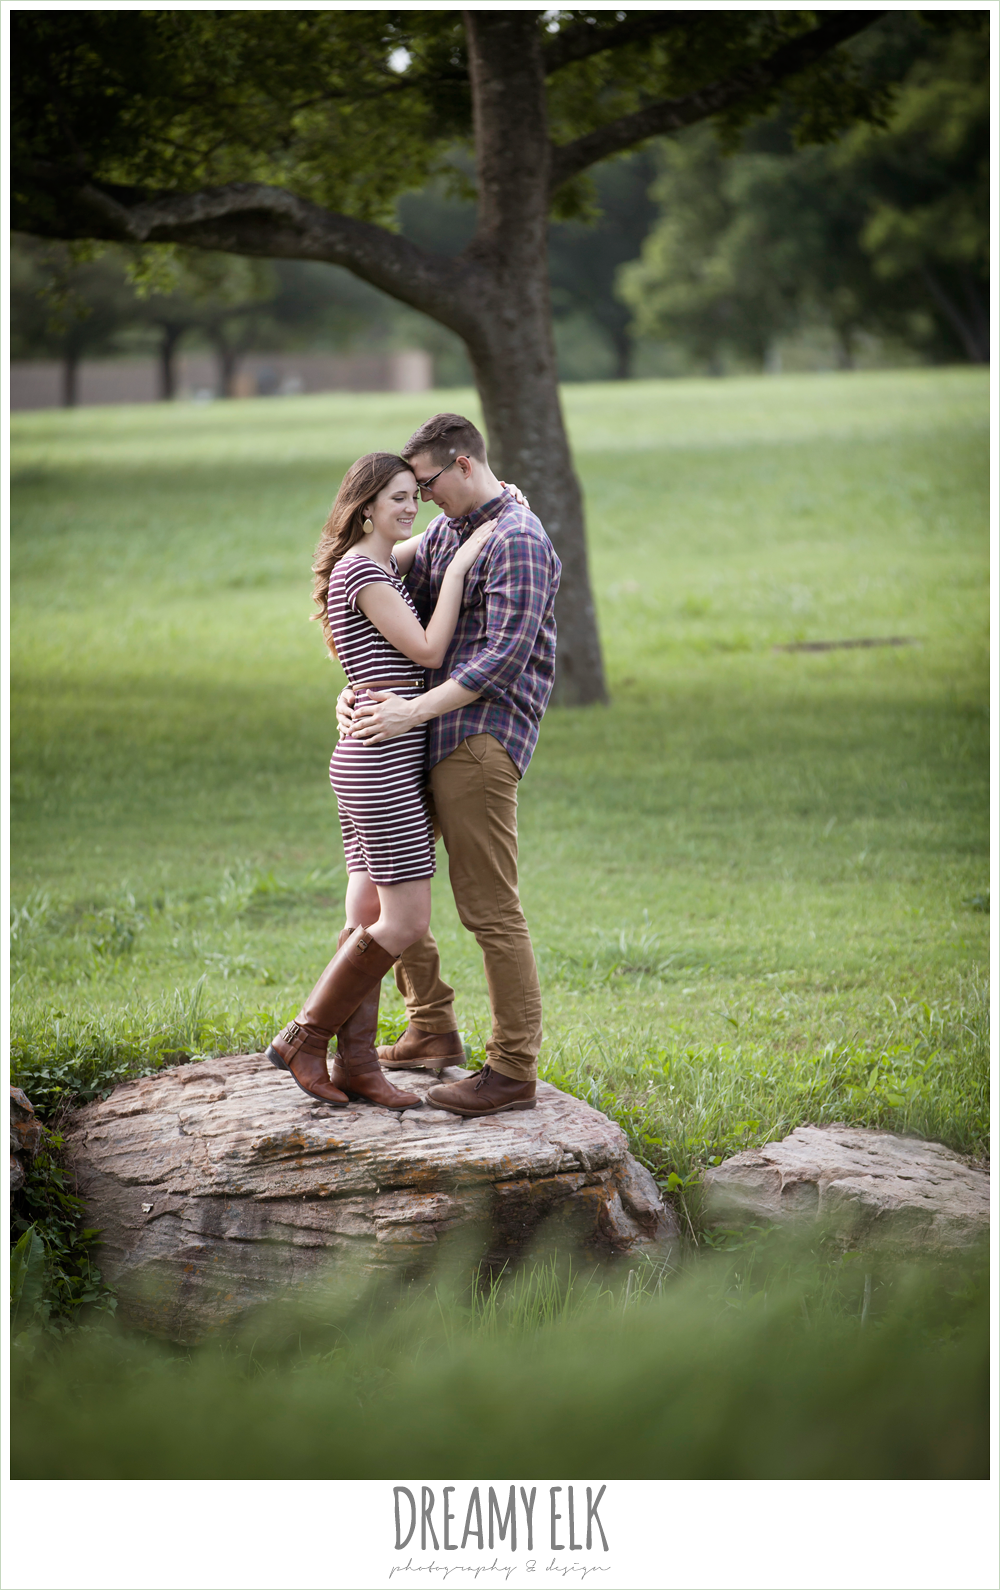 girl and guy hugging, woodsy engagement photo, research park, college station, texas {dreamy elk photography and design}